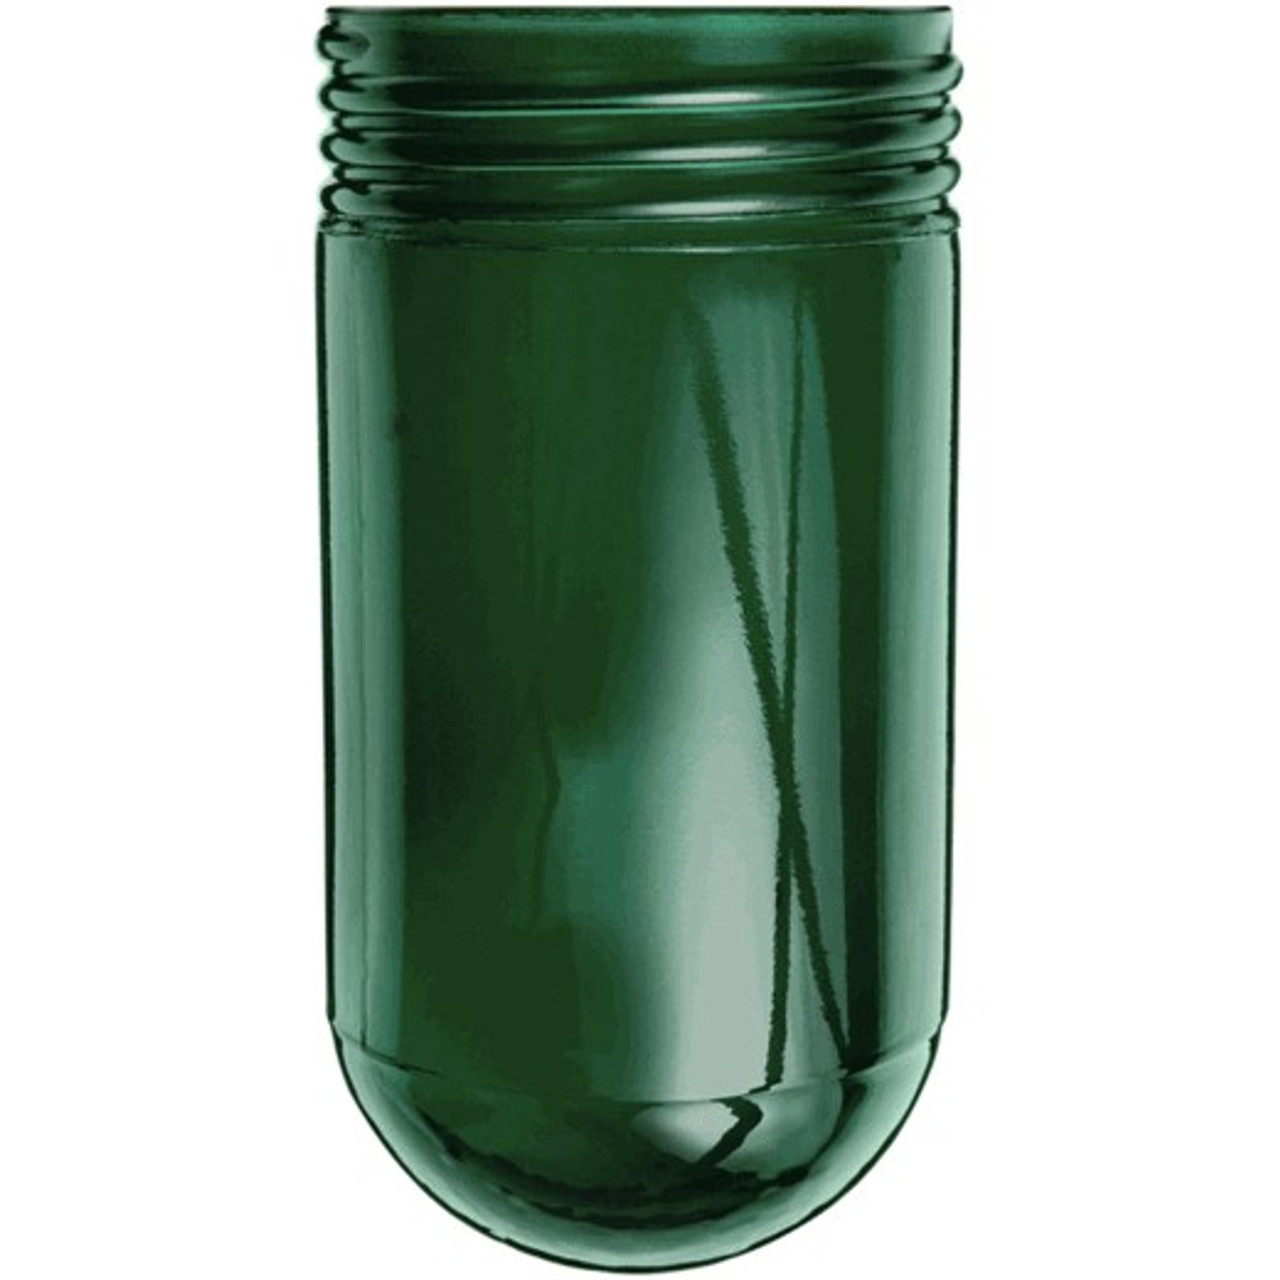 Green mason jar glass